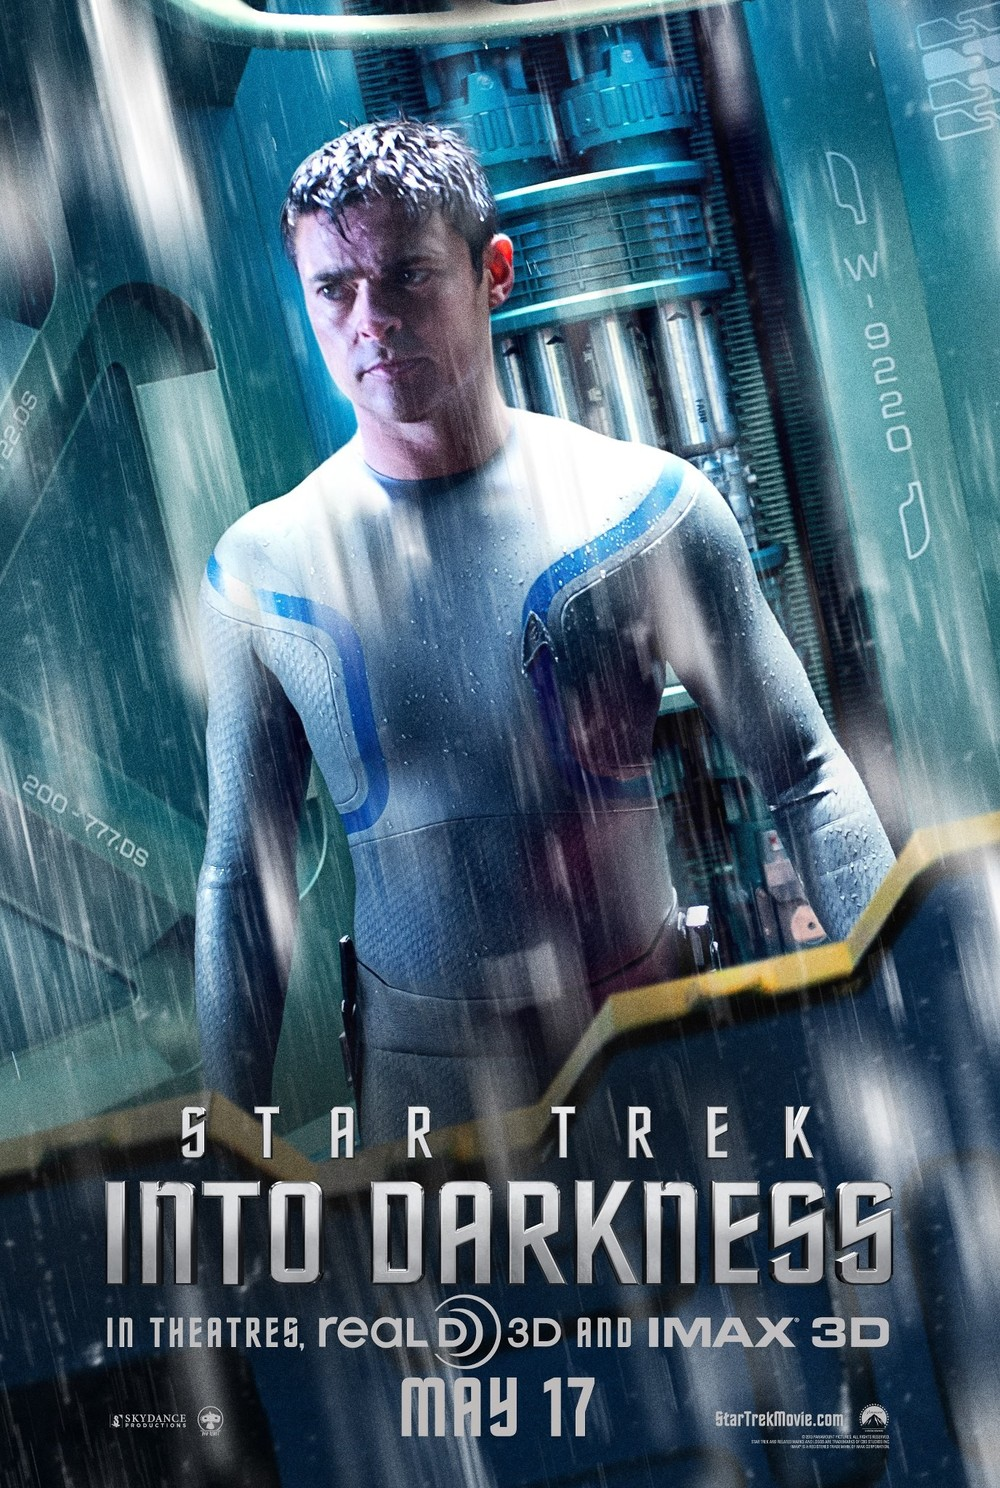 Star Trek: Into Darkness - Wikipedia